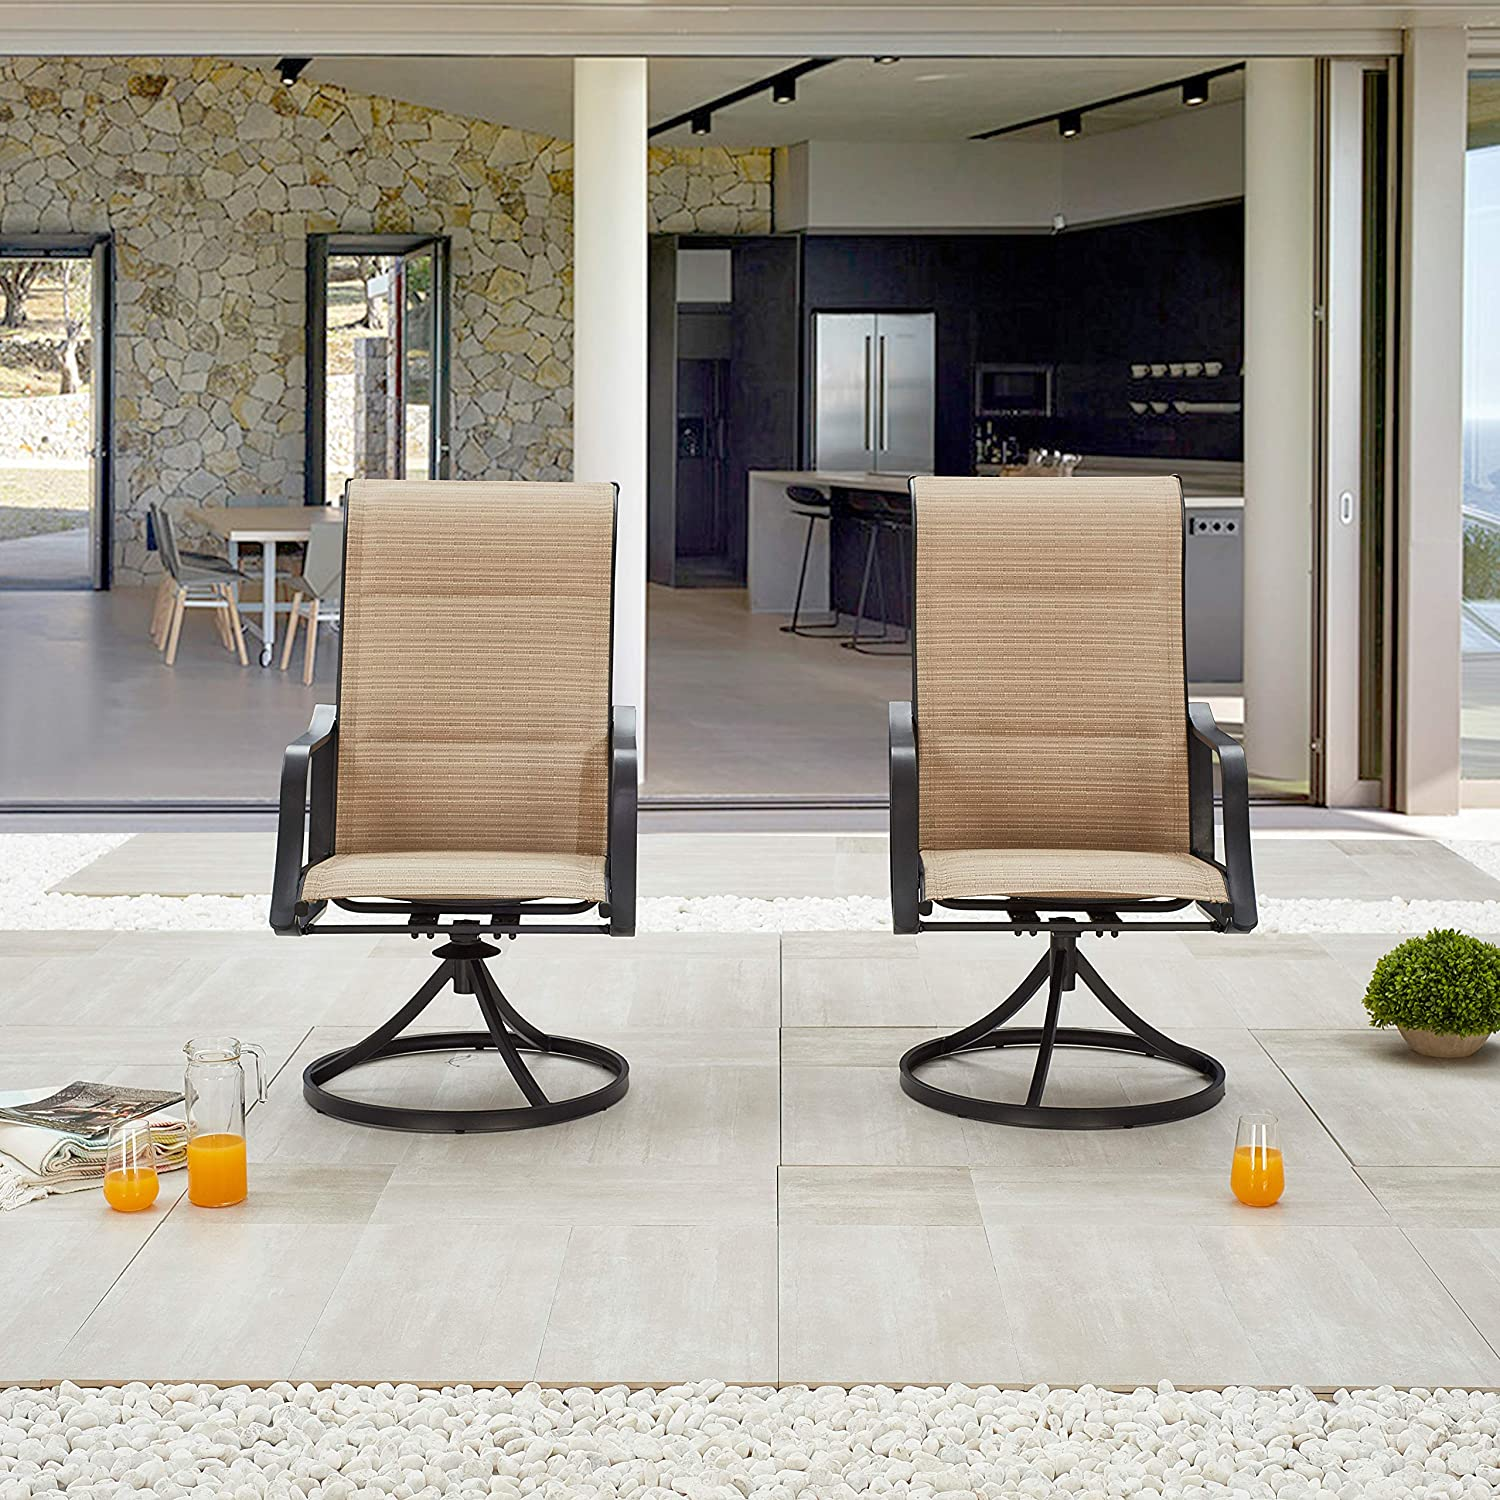 LOKATSE HOME Patio Dining Swivel Set of 2 Outdoor Textilene Fabric Chair with Metal Frame, Beige